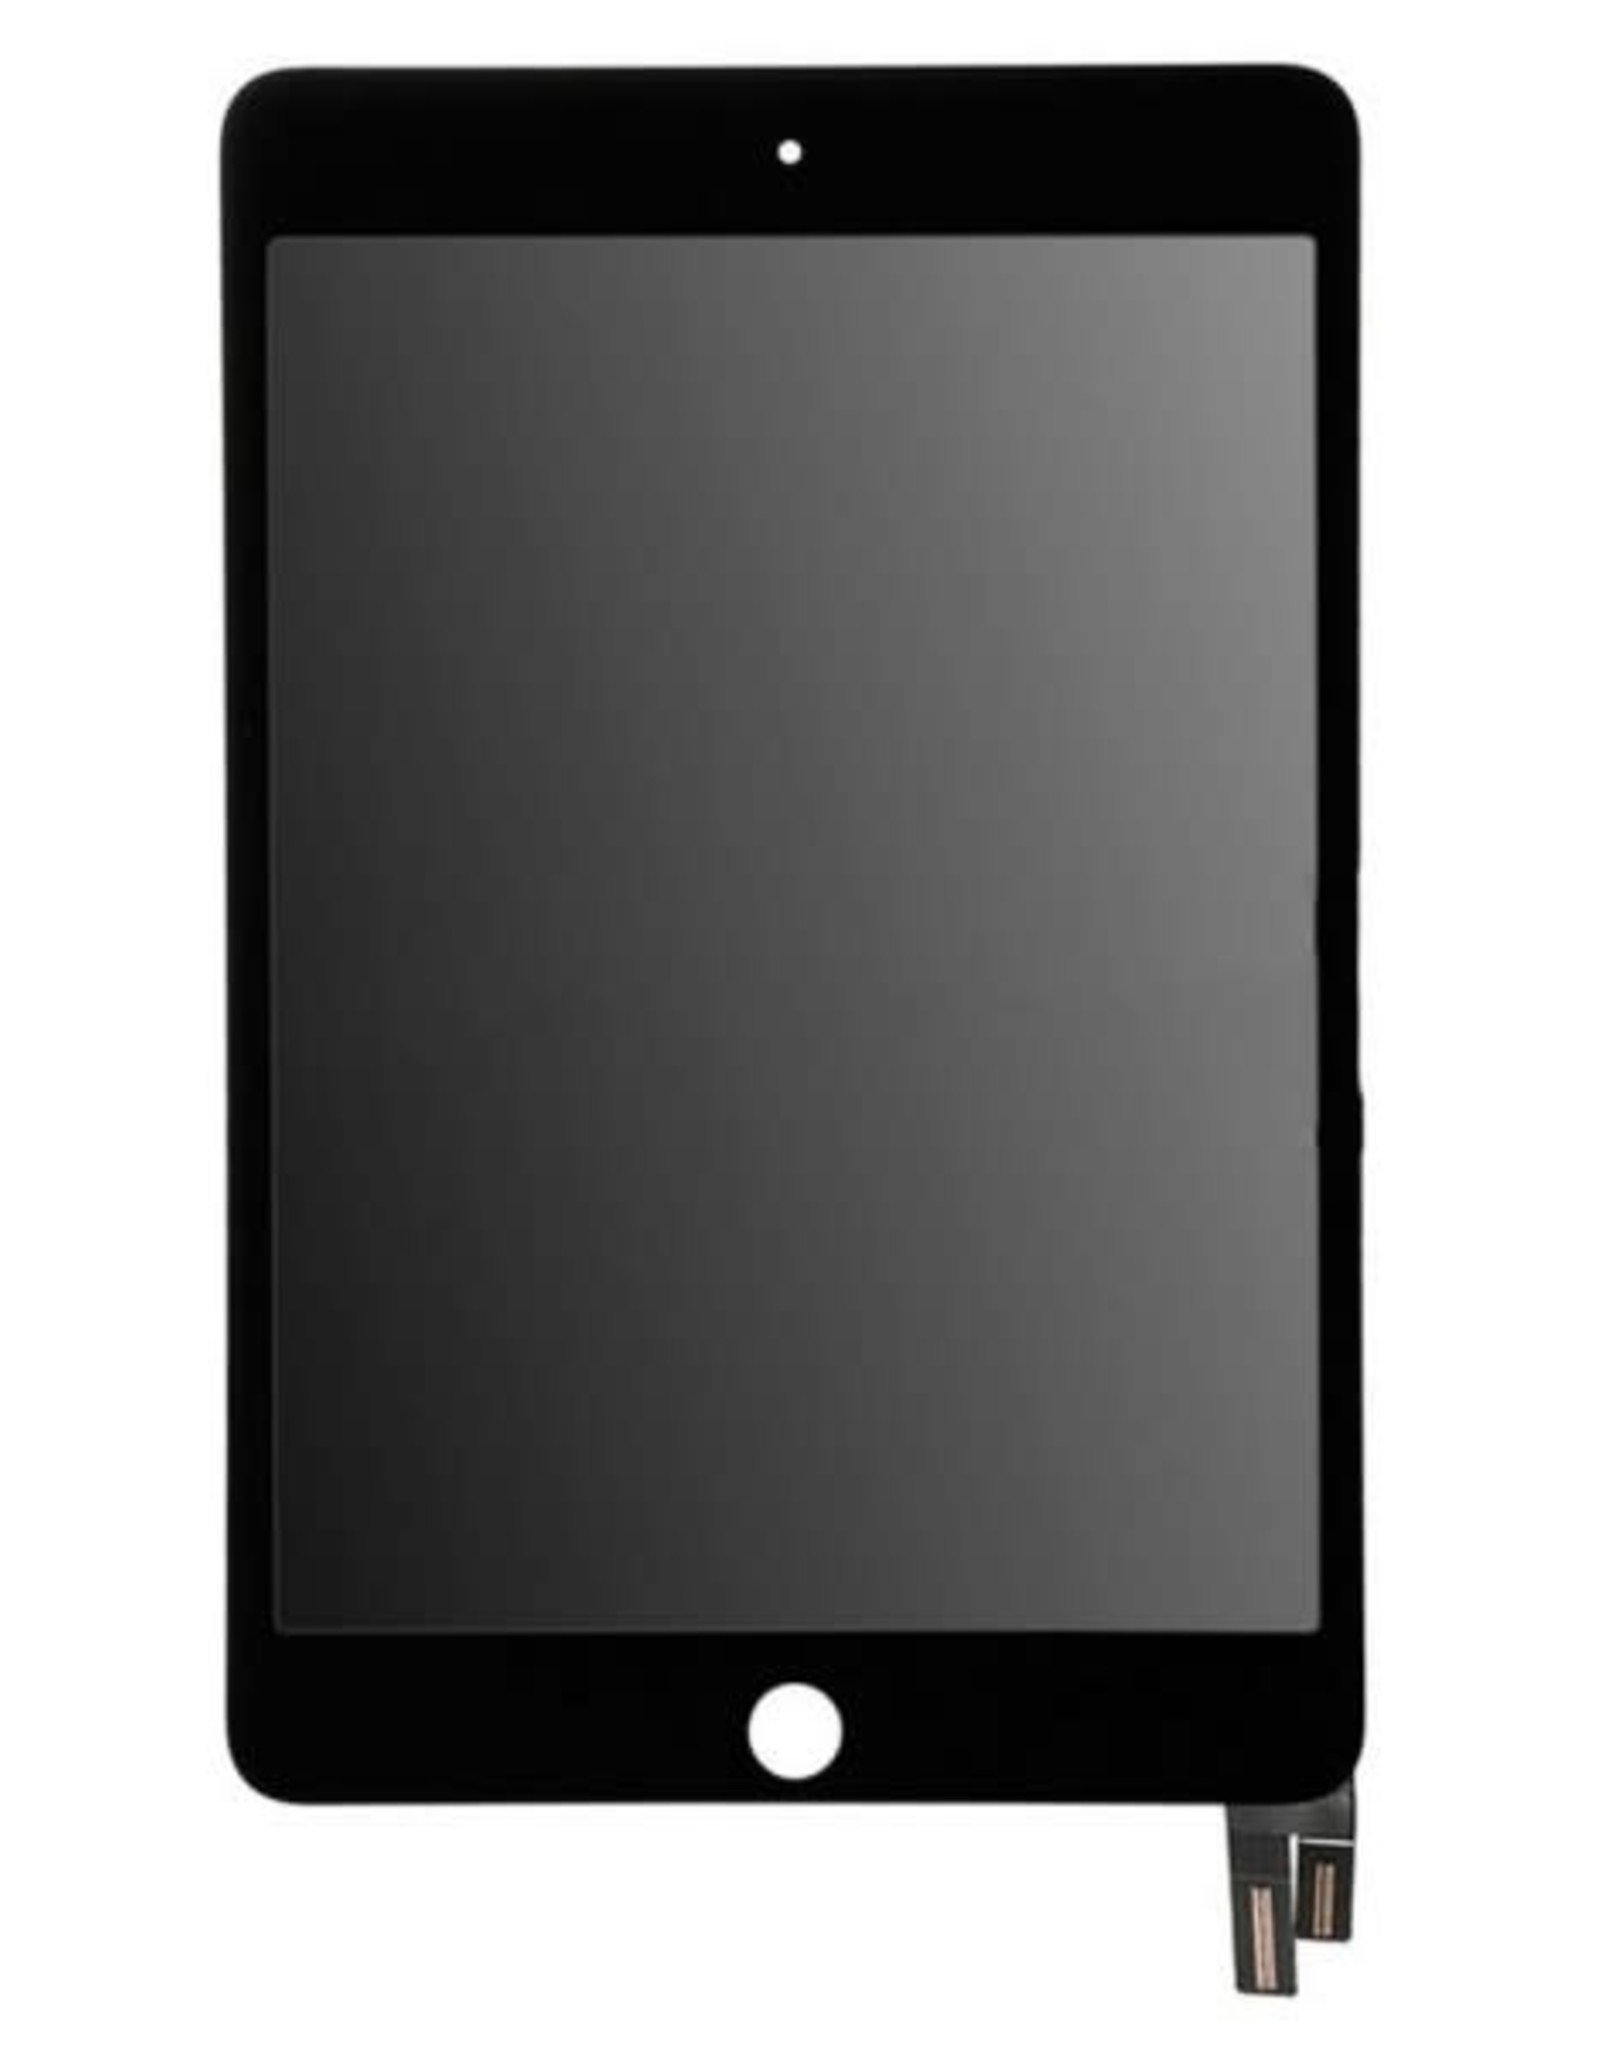 Apple iPad Mini 4 A1538 A1550 LCD Display Touch Screen Digitizer Assembly